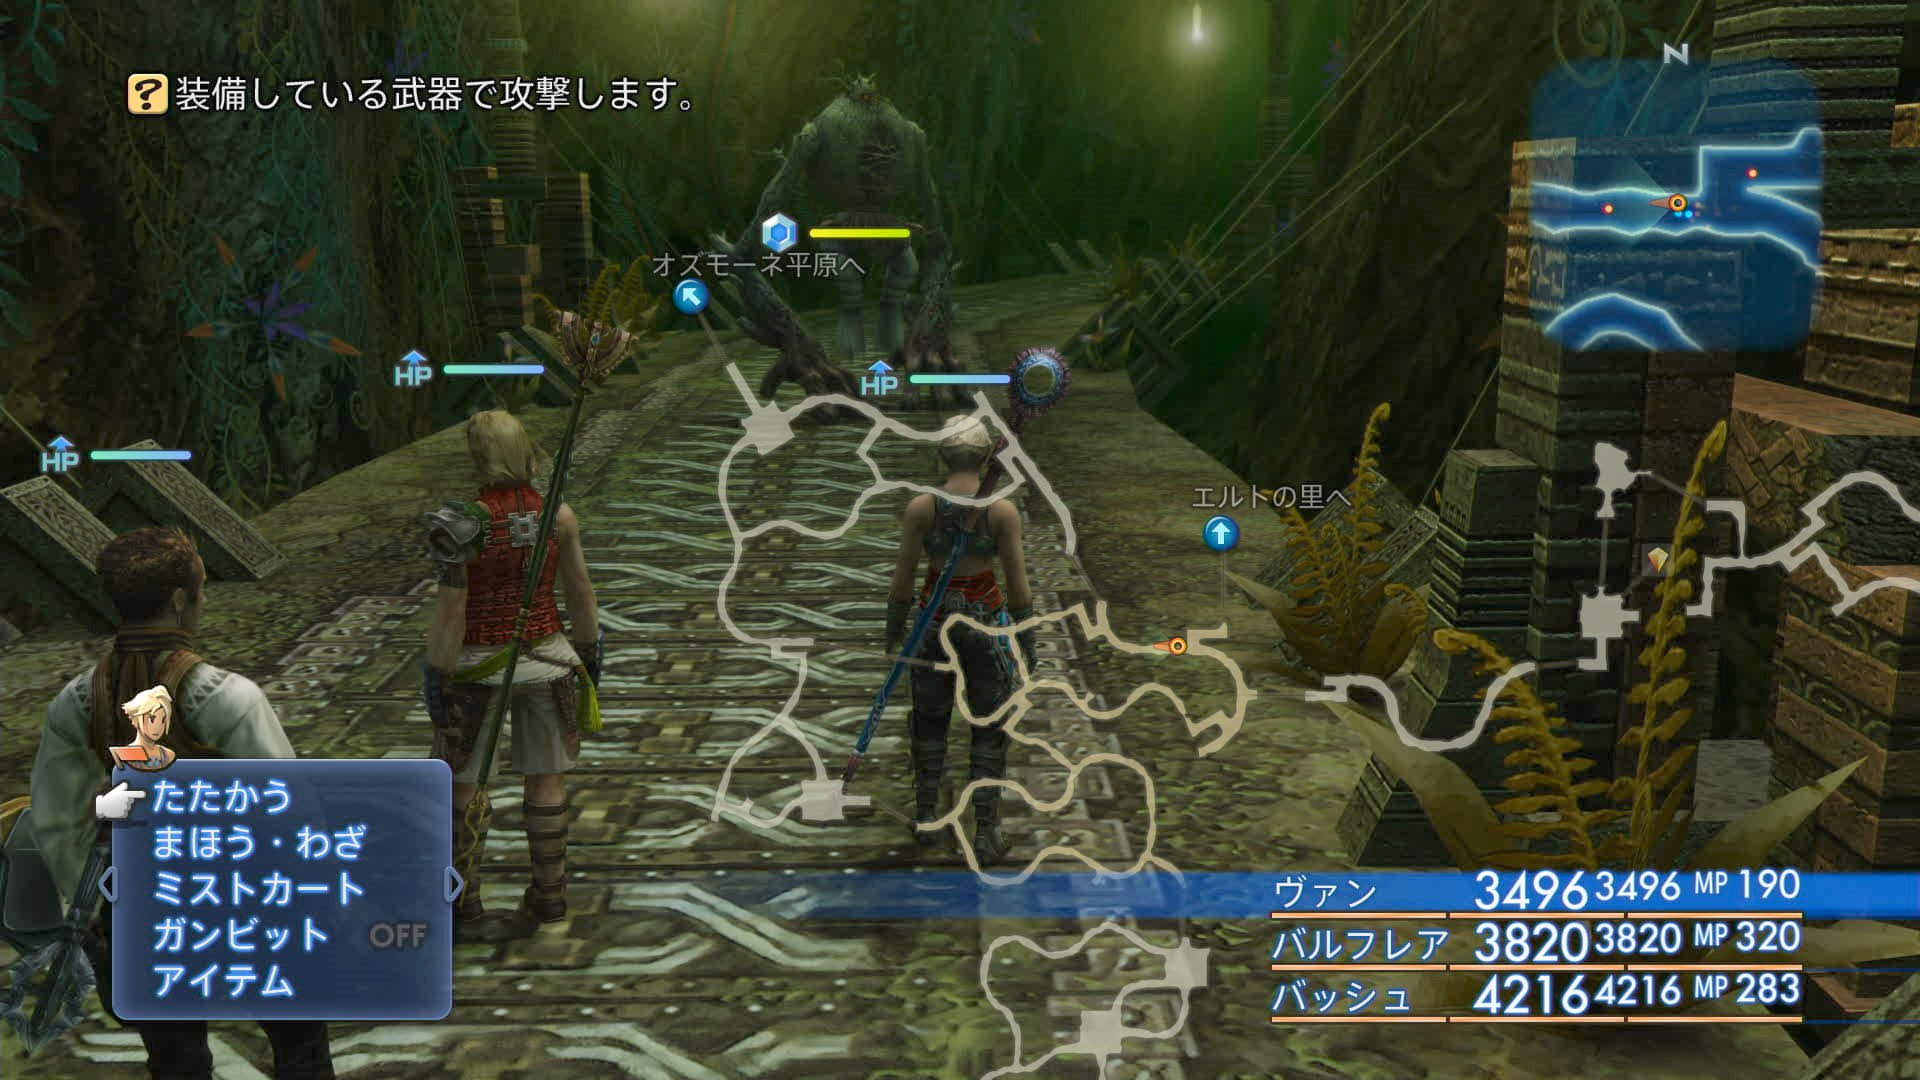 Final Fantasy XII The Zodiac Age Review (PS4) - Rice Digital | Rice